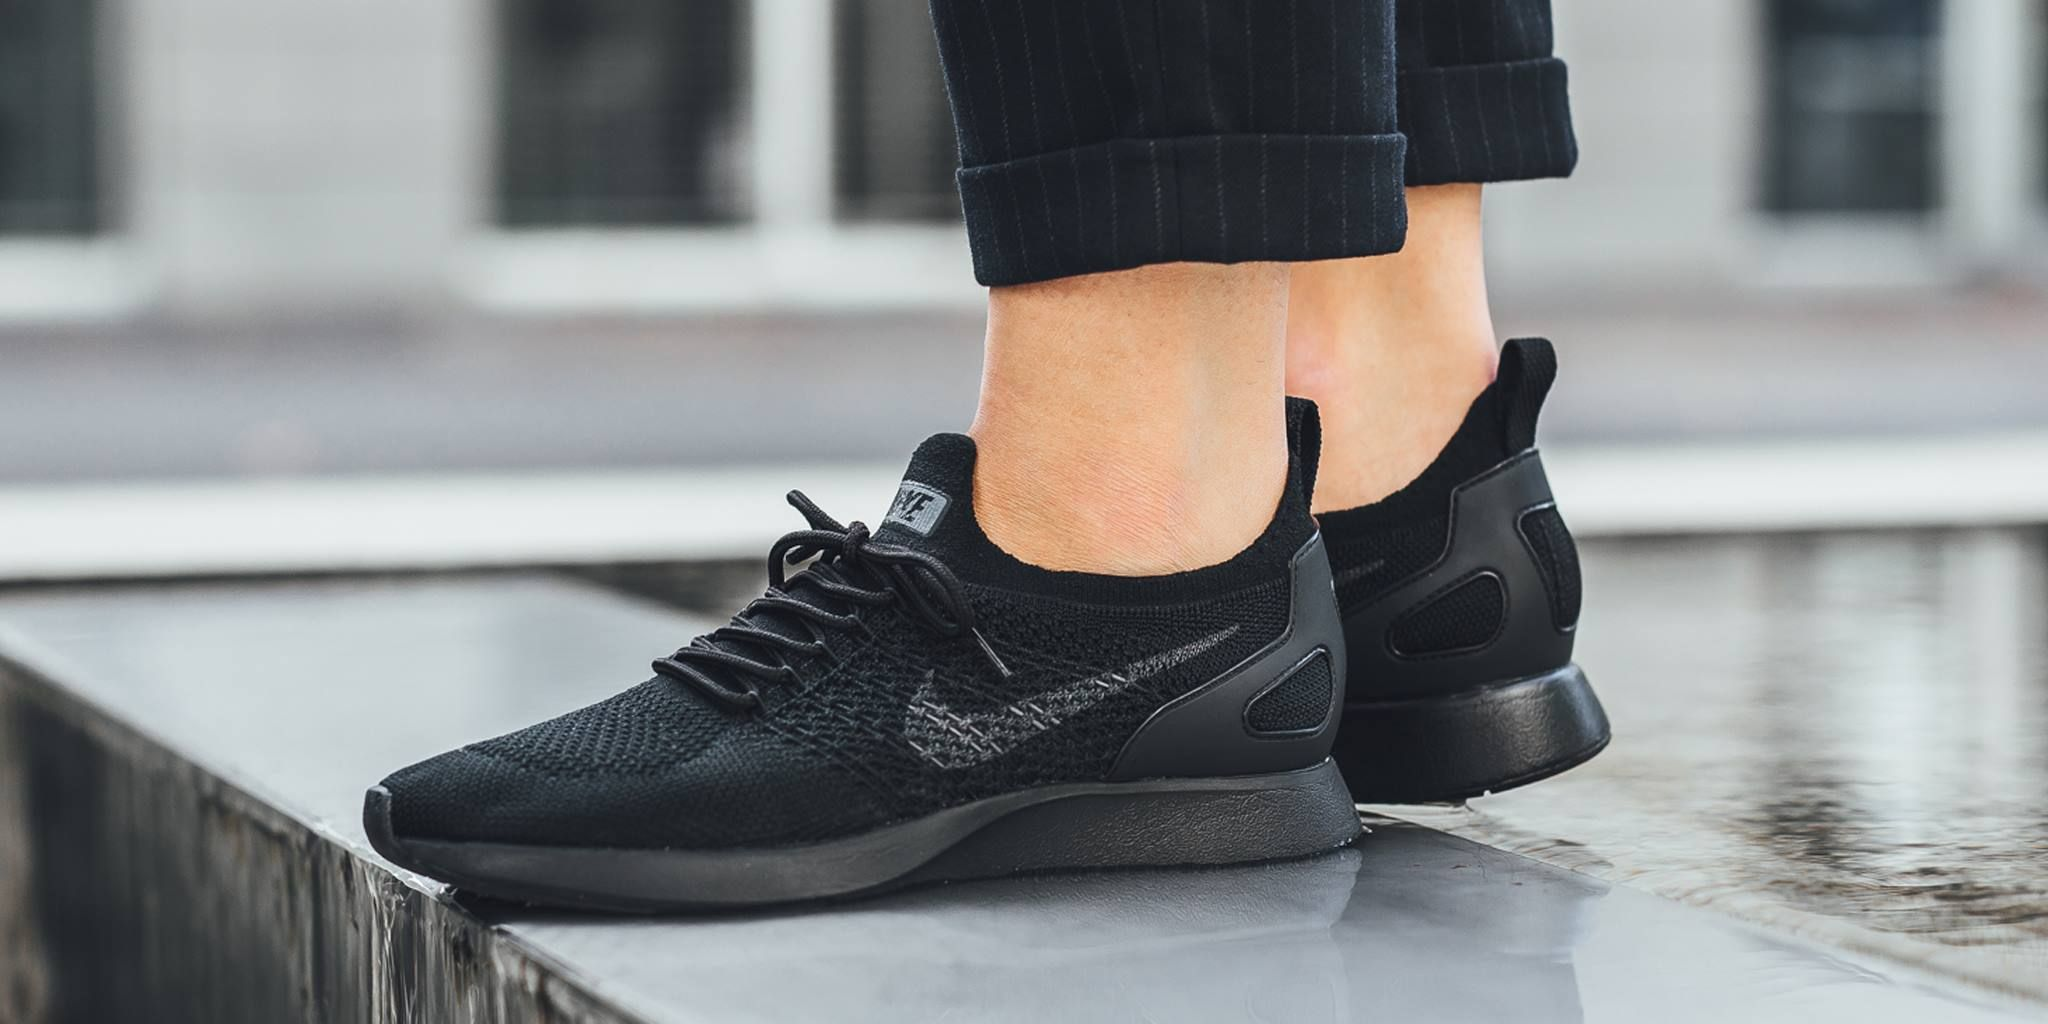 Triple Black Lands On The Nike Air Zoom Mariah Flyknit Racer ... c992856aca